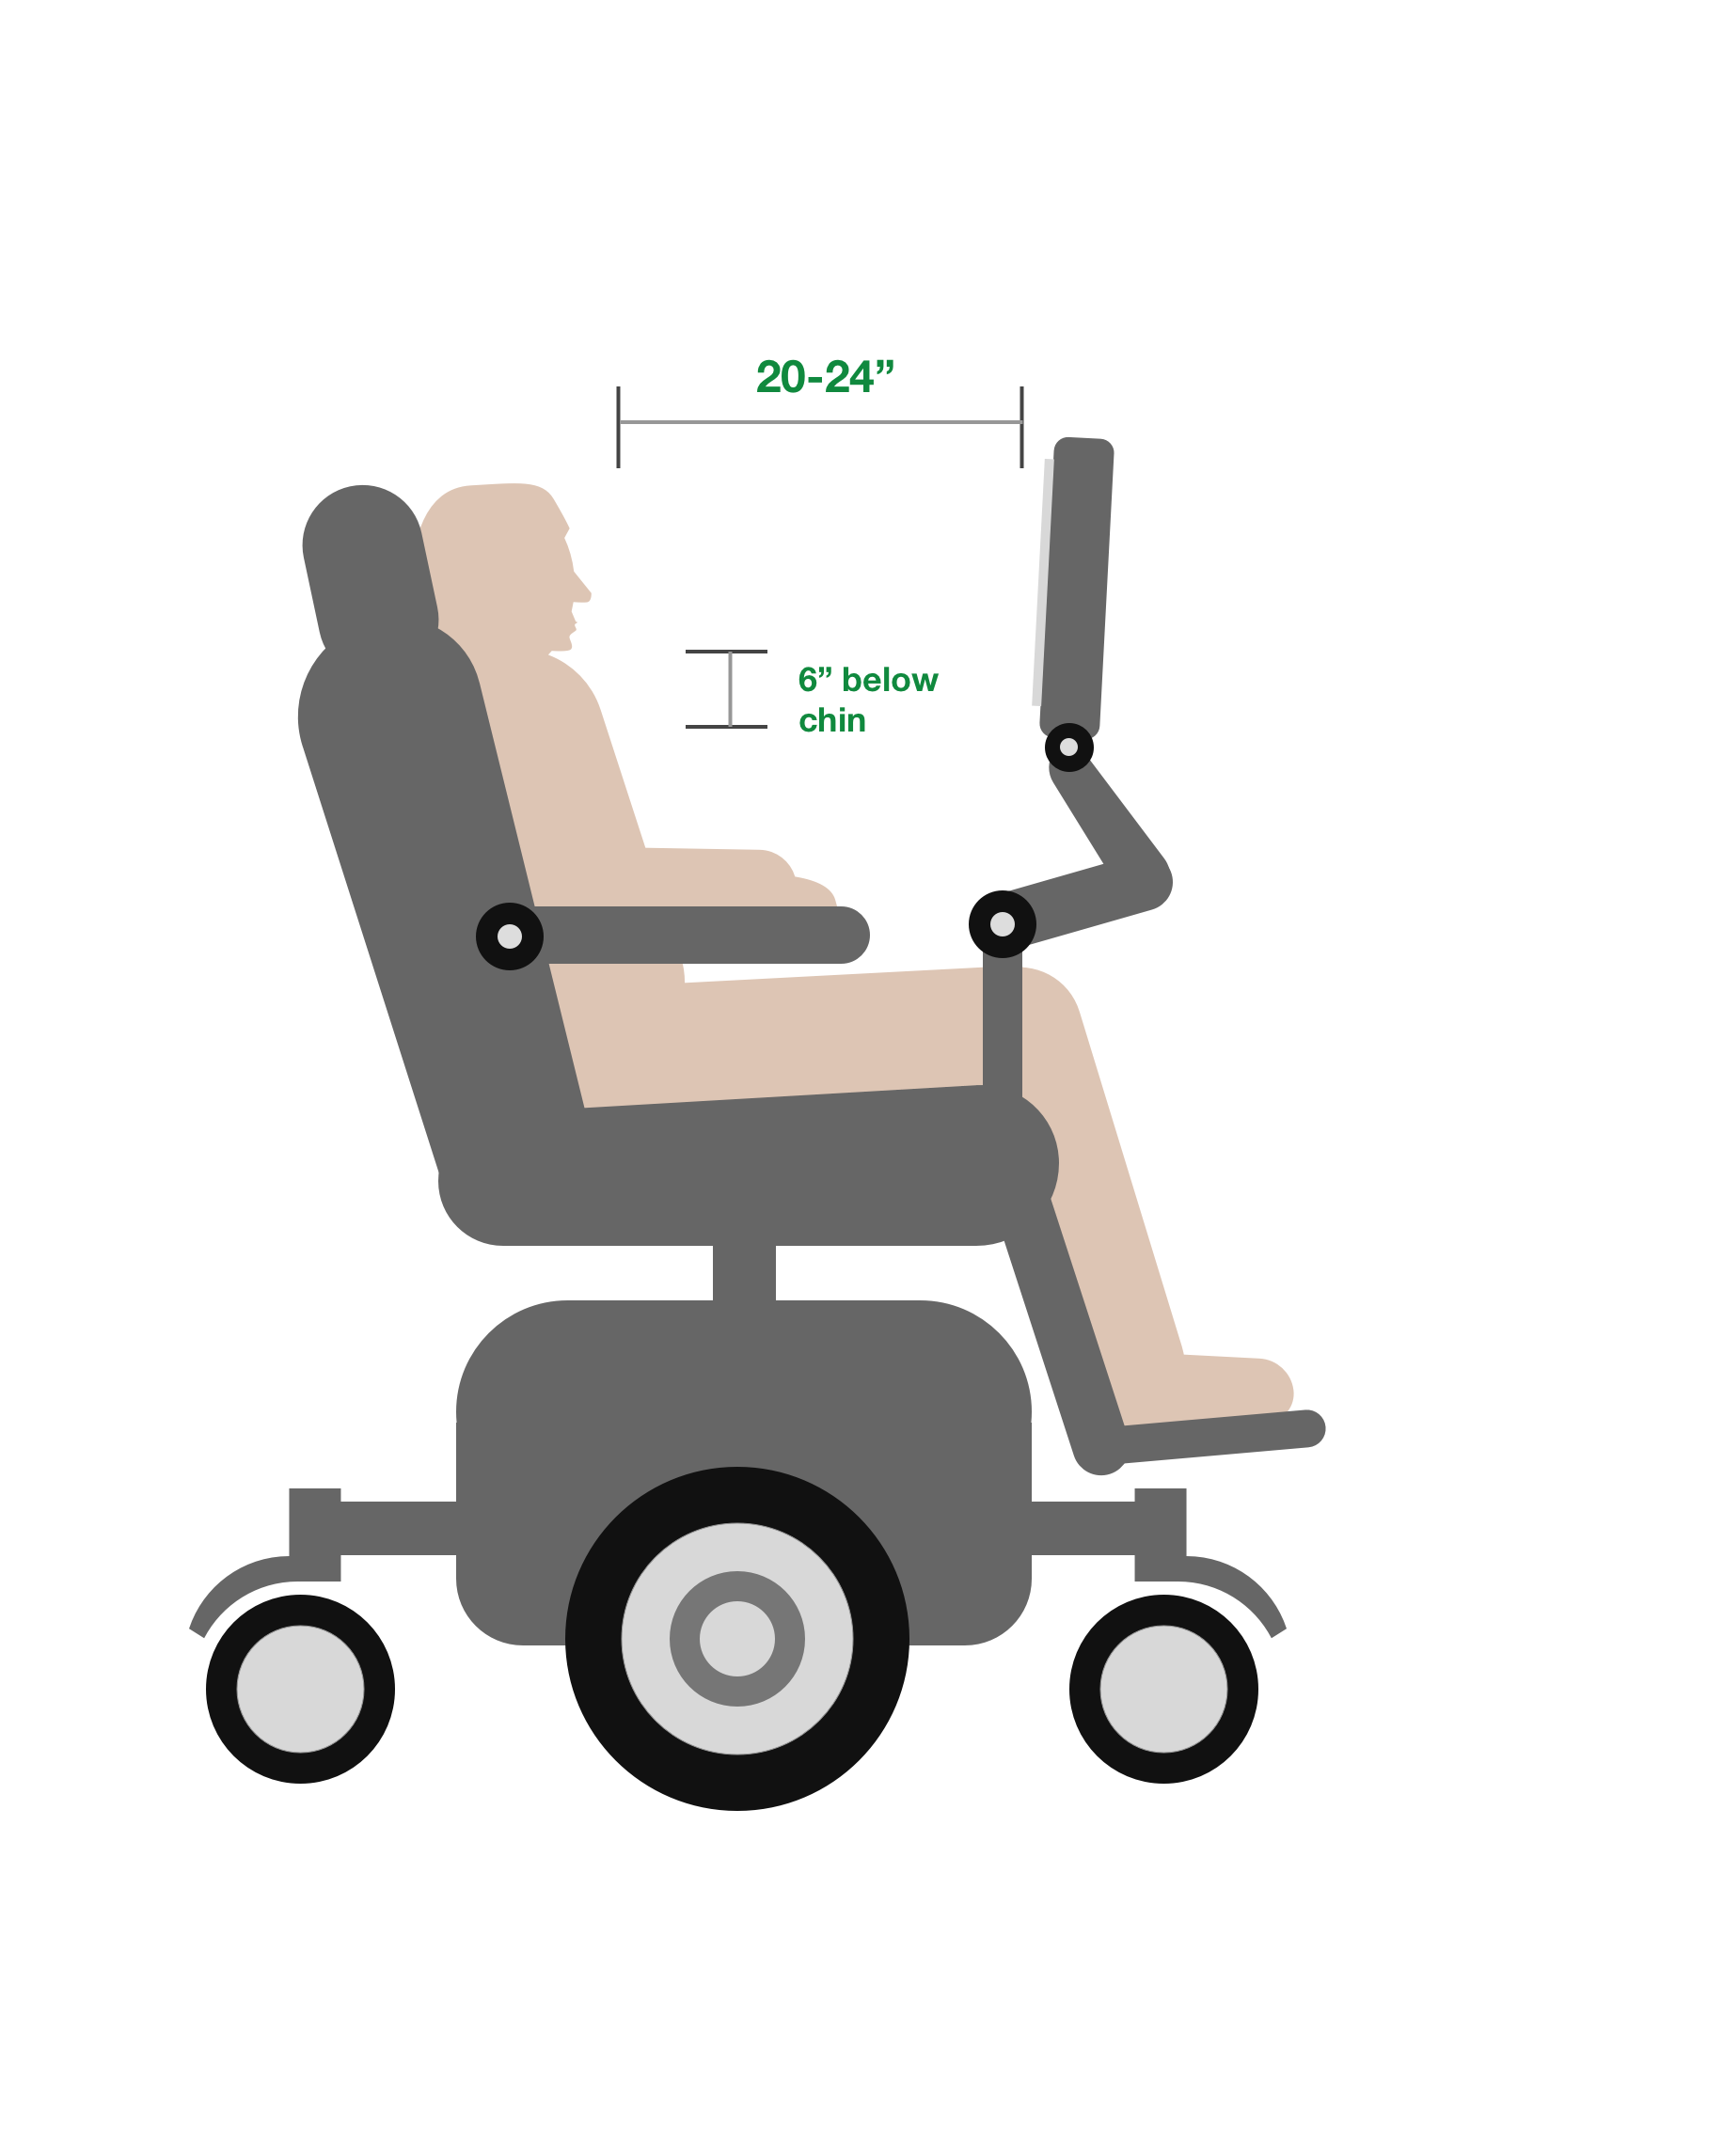 Positioning your tablet or AAC for Ability Drive